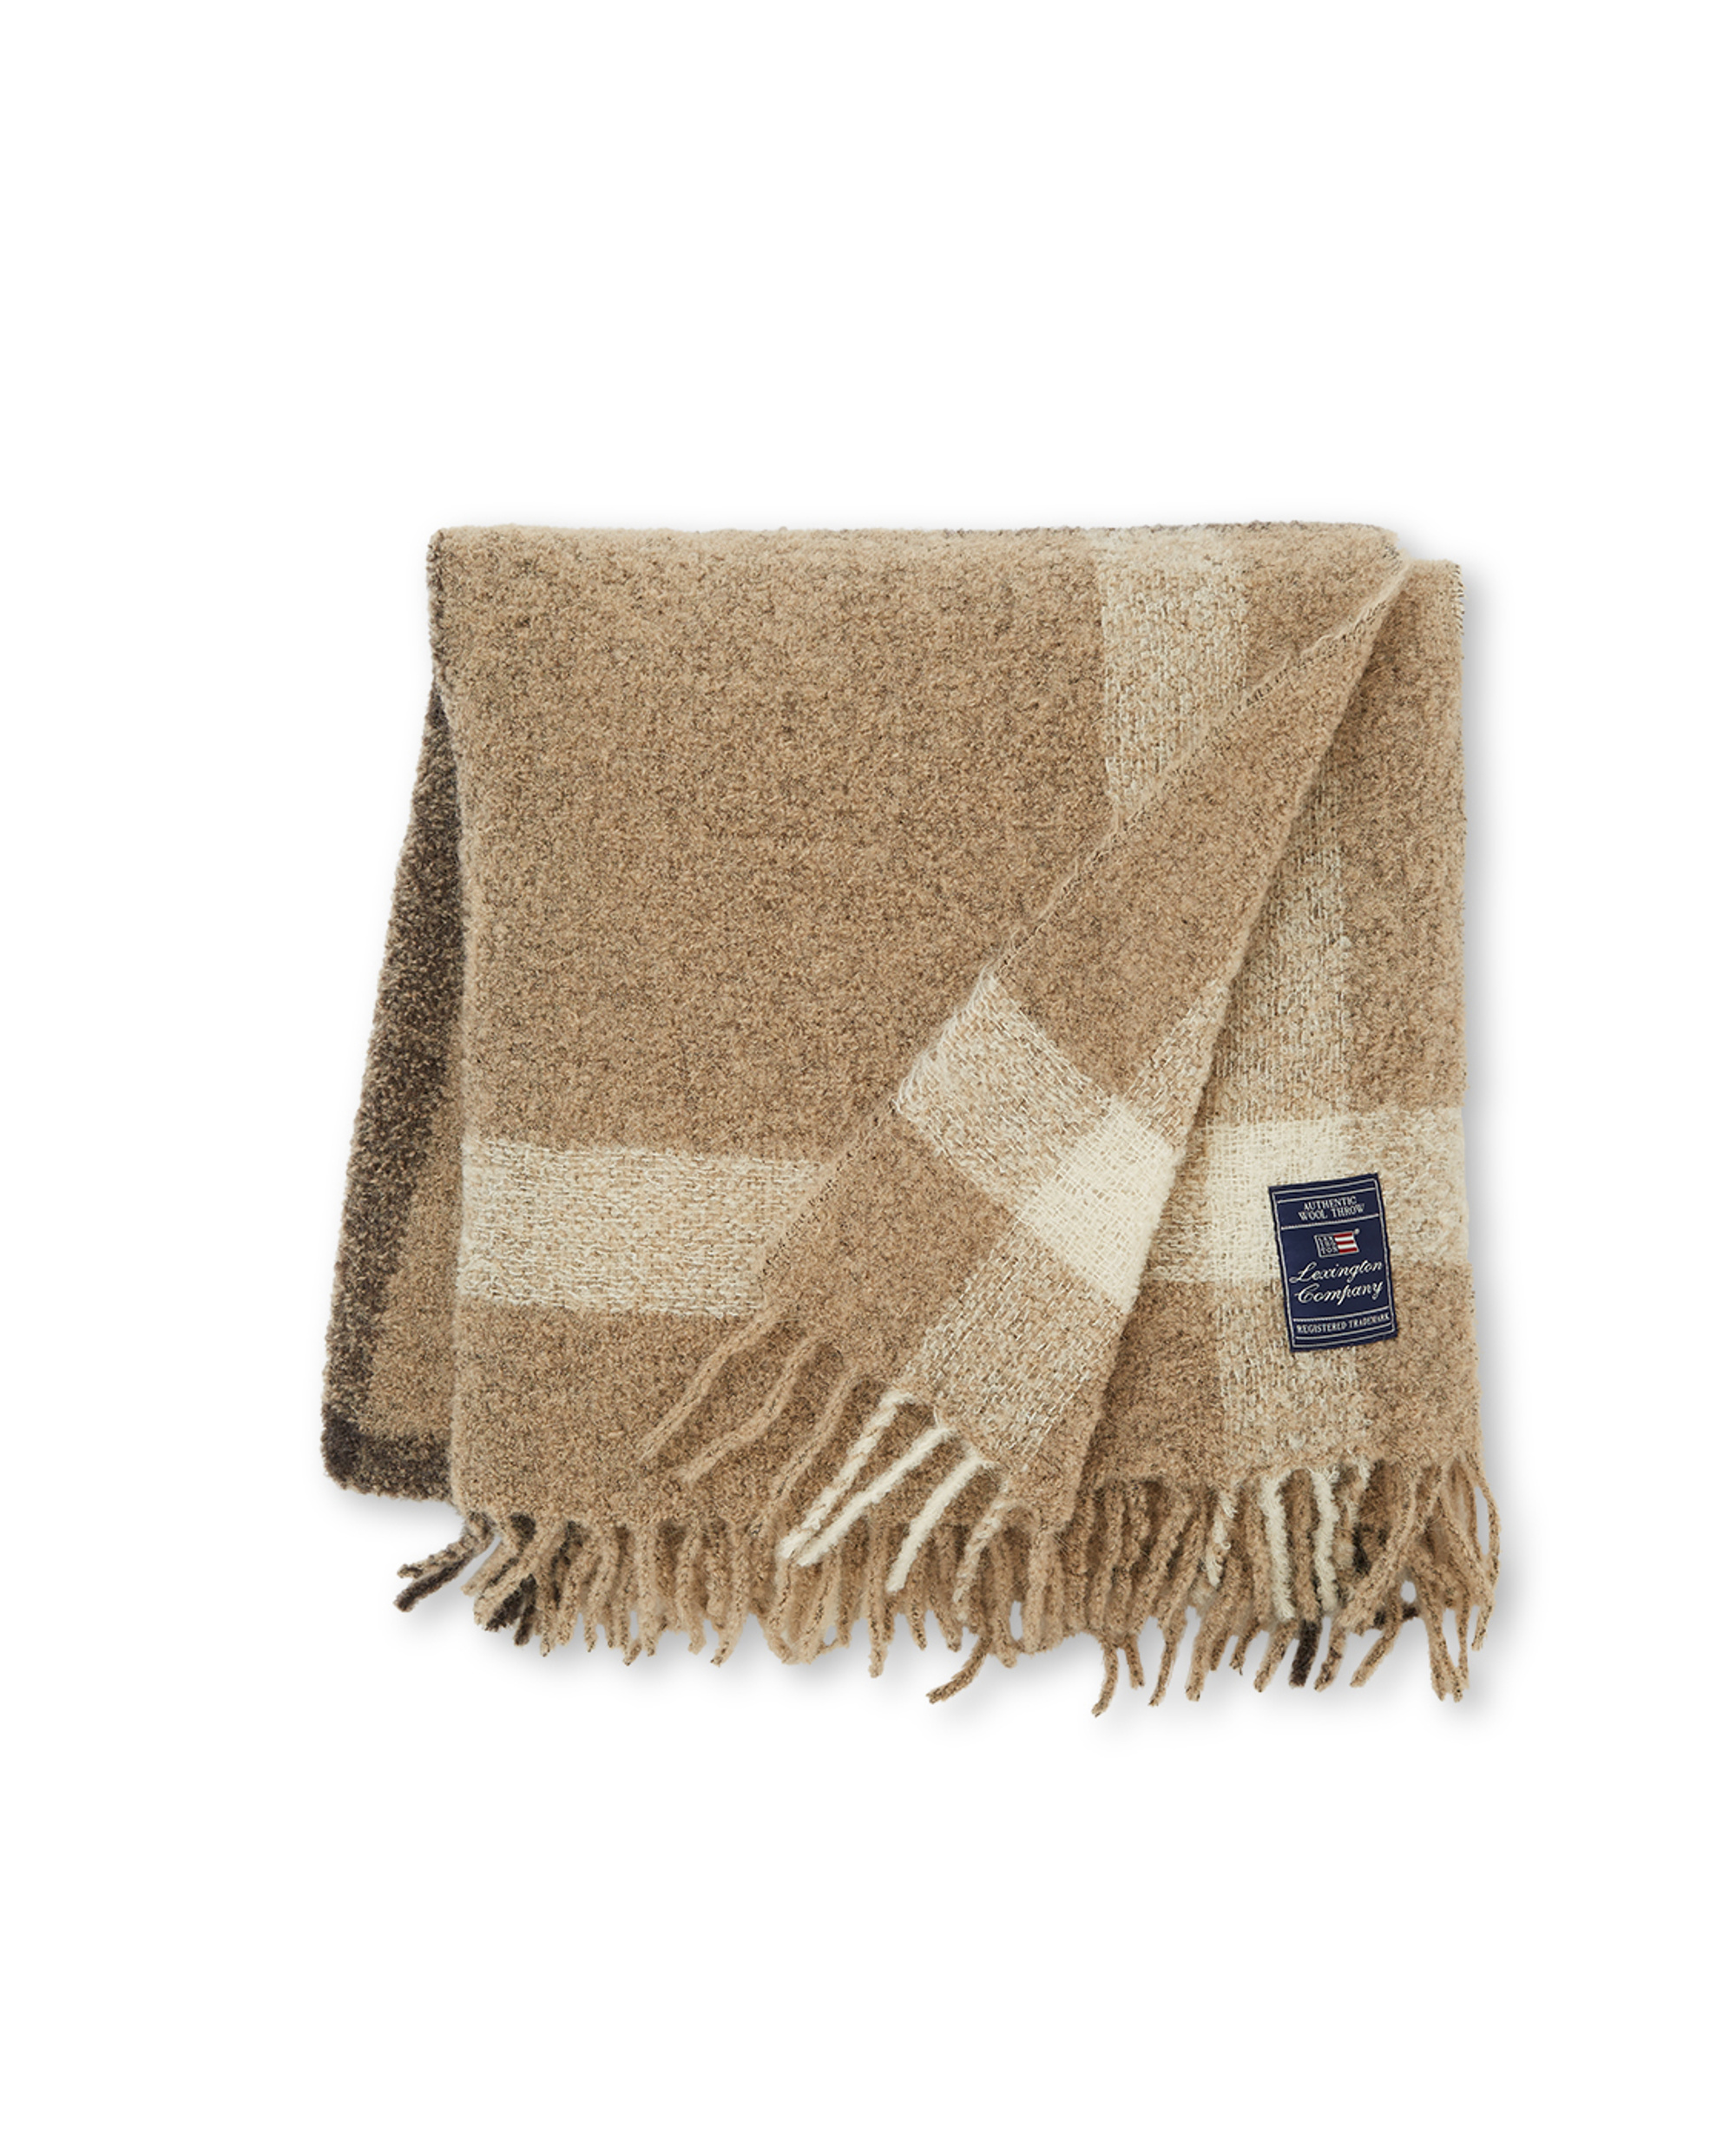 Checked Bouclé Throw, Beige/Brown